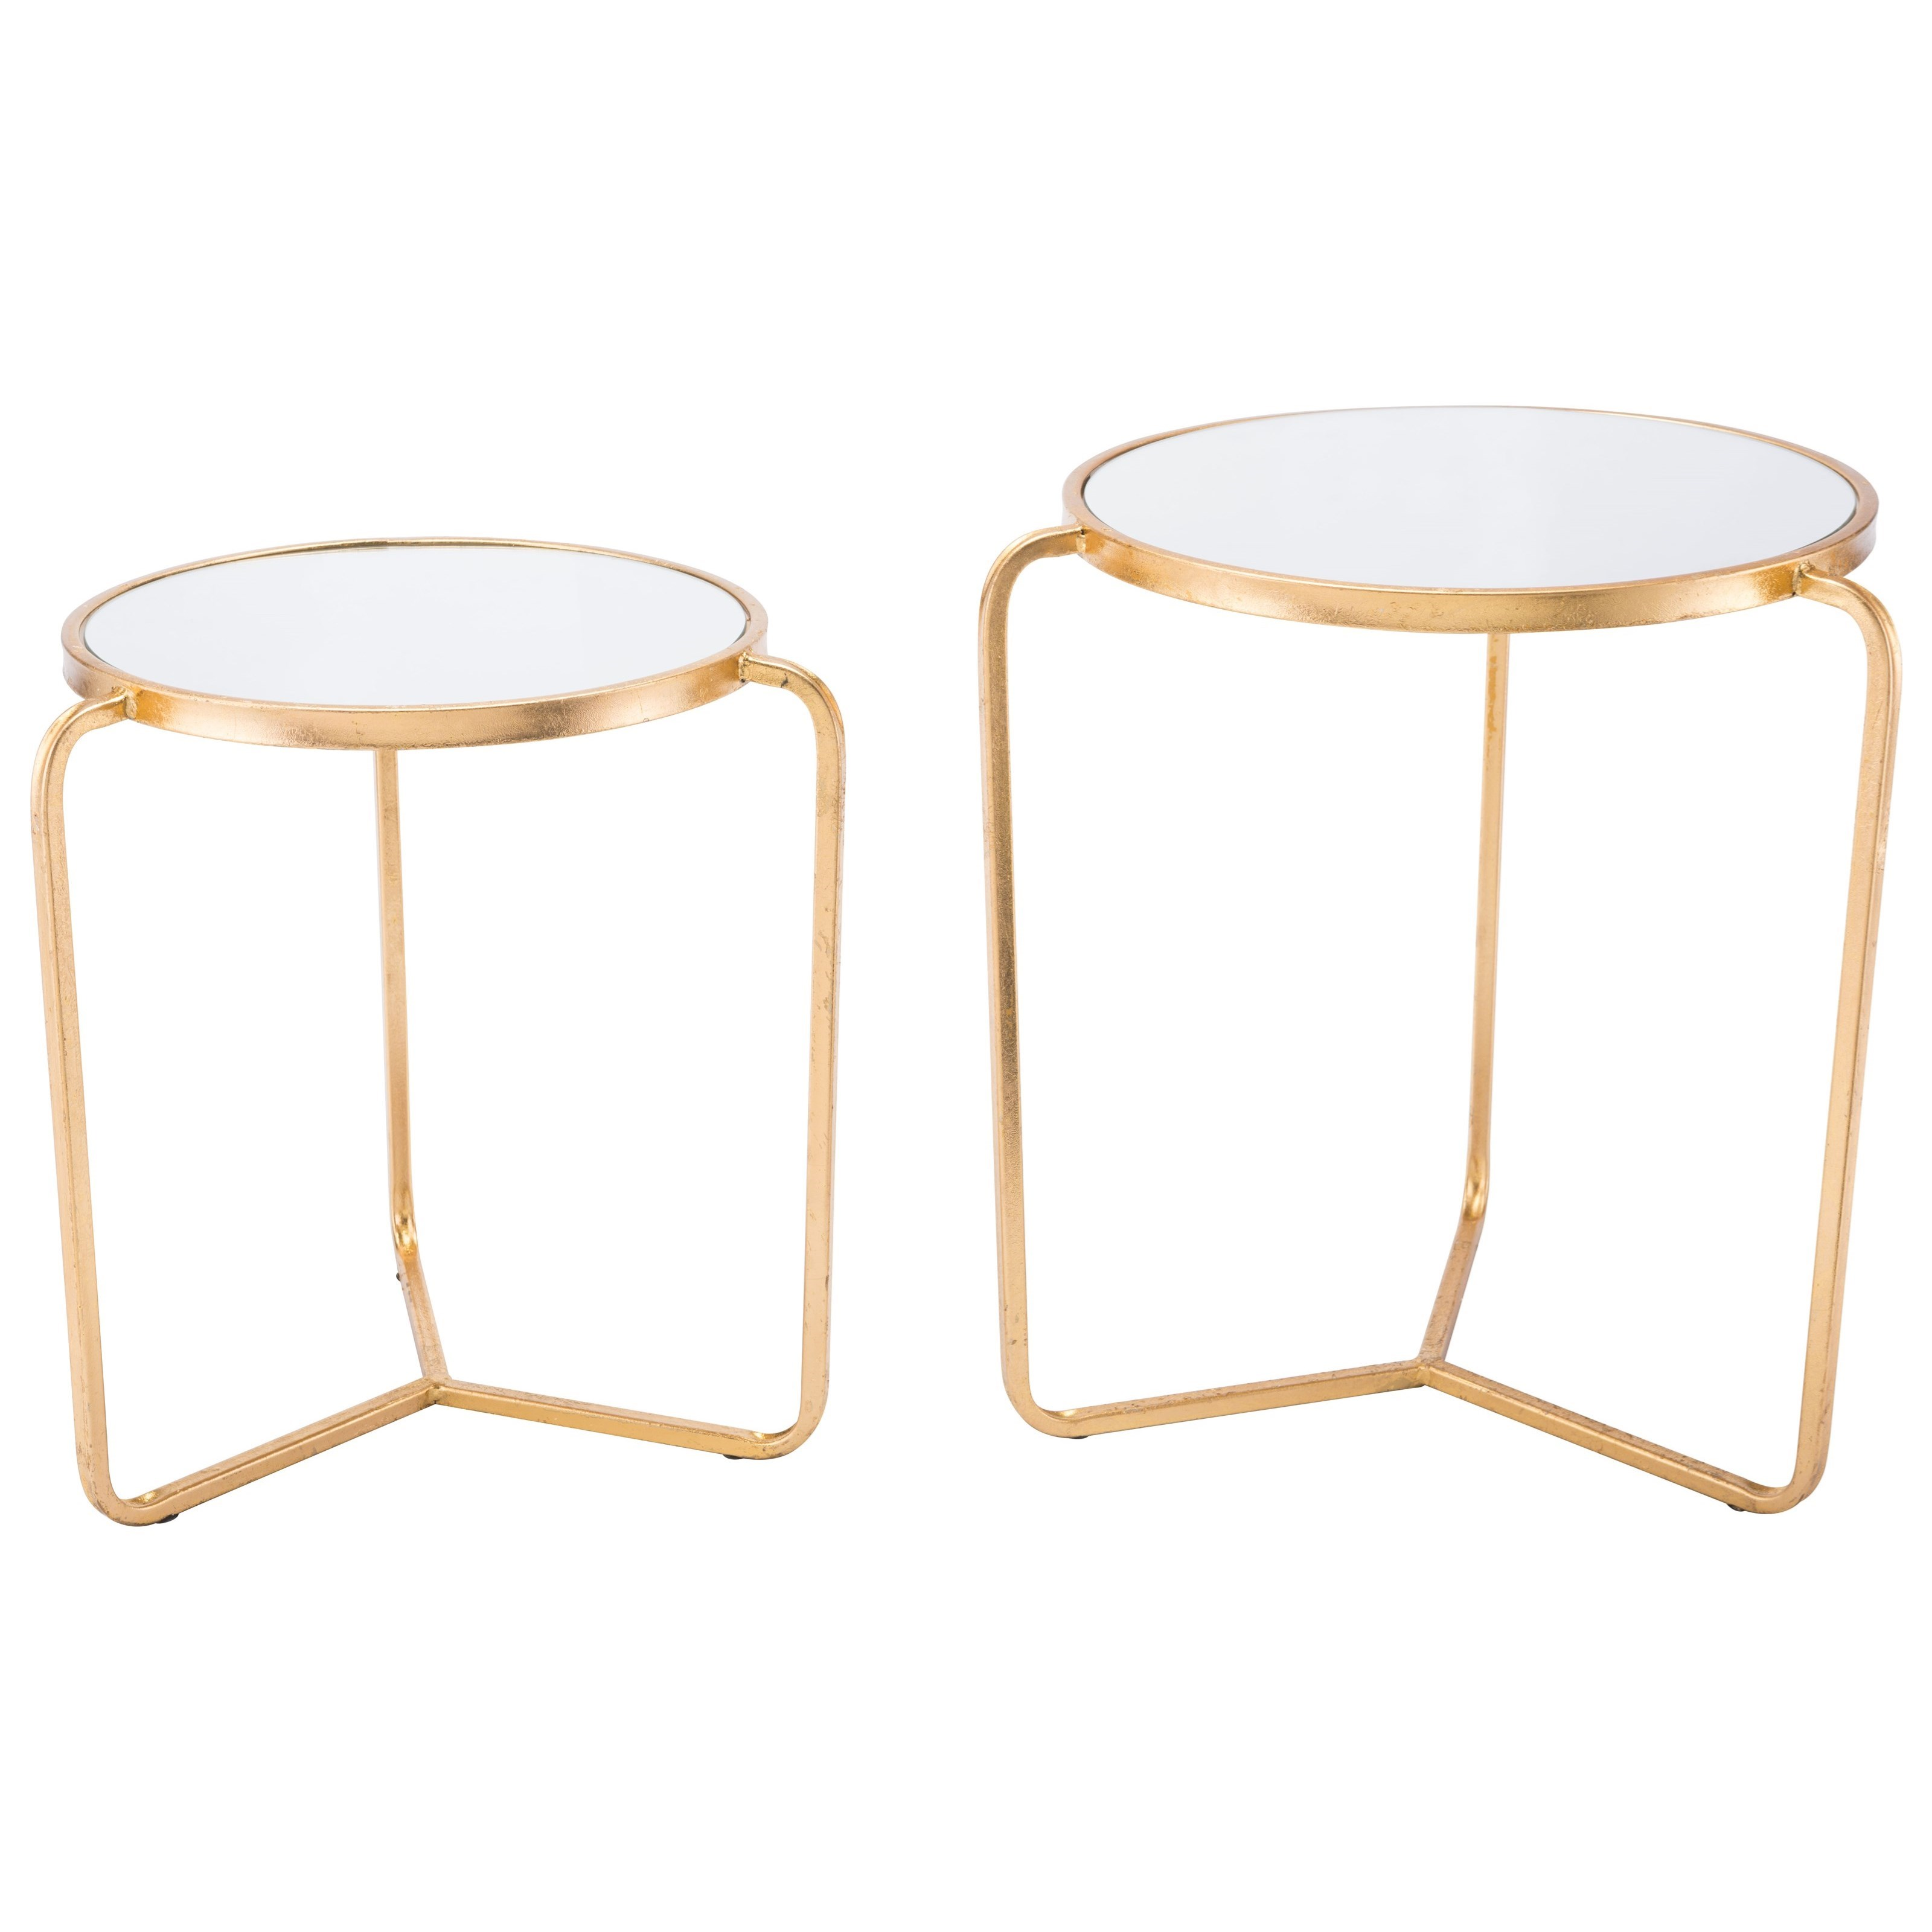 Zuo Accent Tables Set of 2 Tripod Tables - Item Number: A10782